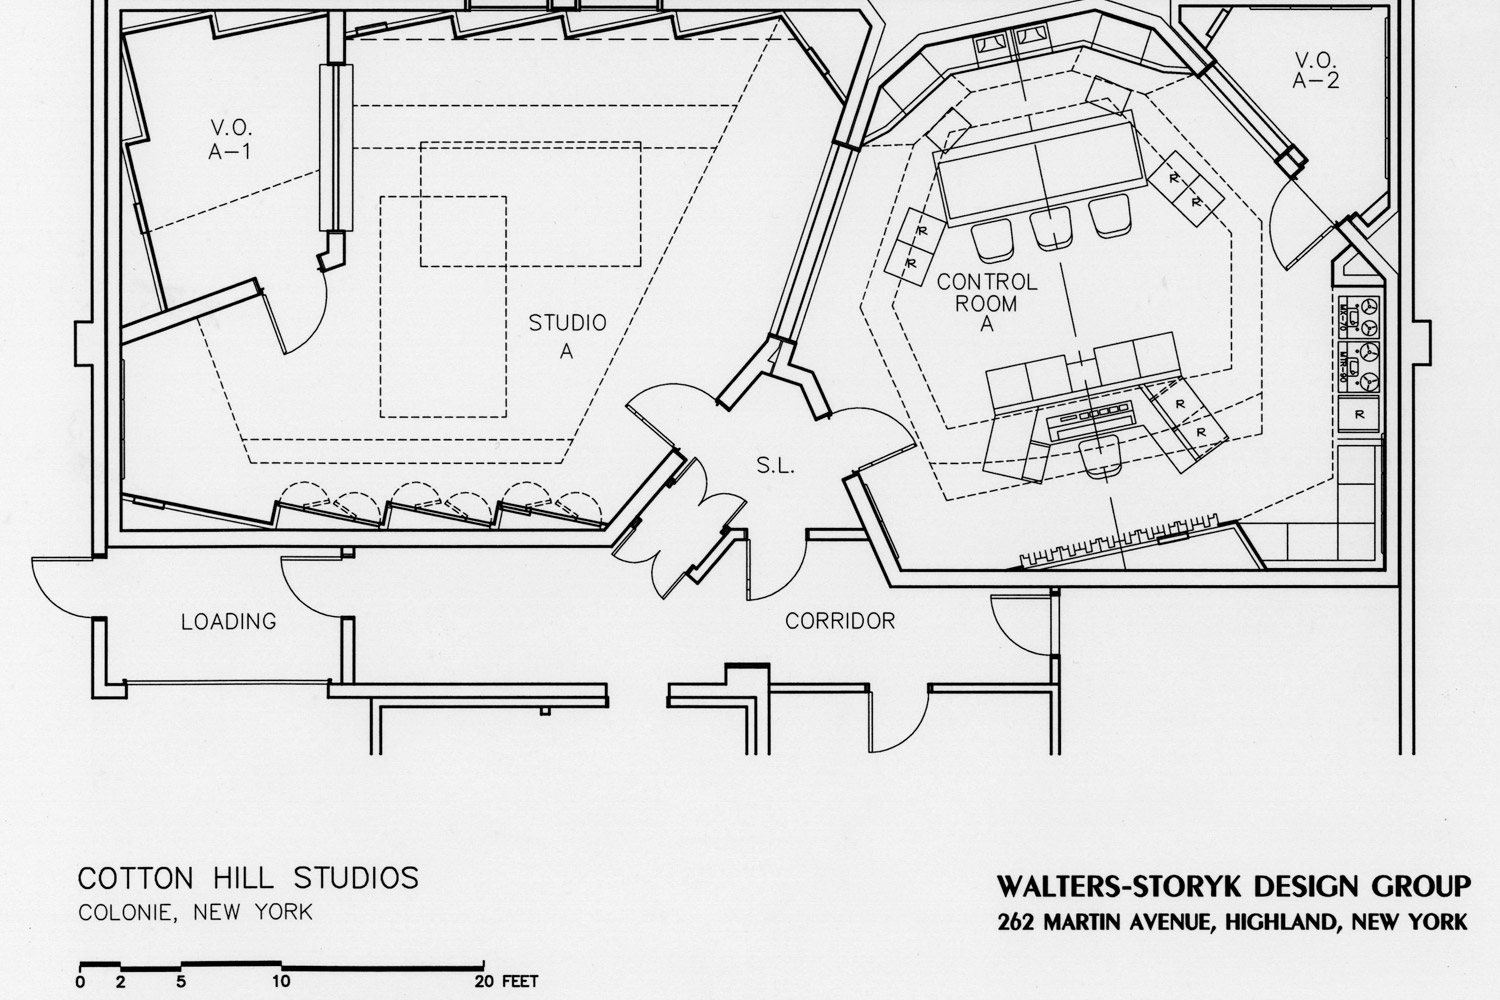 Former Cotton Hill Studios, now Magic Wig Productions. Designed by WSDG (Walters-Storyk Design Group). Presentation drawing 2.